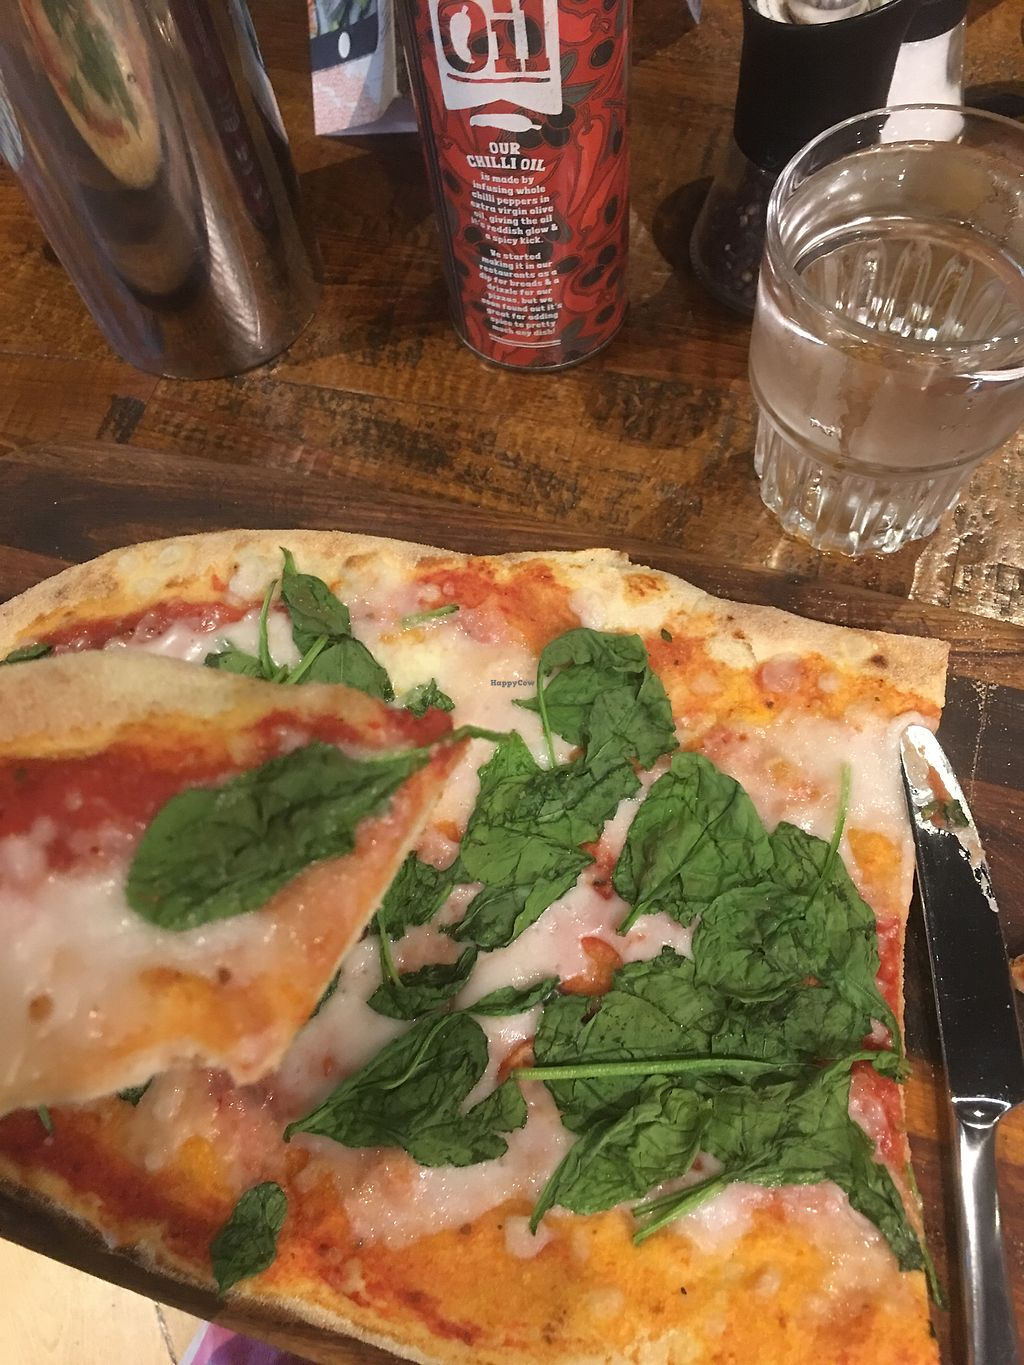 """Photo of Zizzi - Wharfside St  by <a href=""""/members/profile/sidney489"""">sidney489</a> <br/>So yummy! I ordered the vegan rustica margarita pizza! Honestly the best pizza i've ever had! It has a peta award! I ordered strawberry sorbet for dessert so yummy and creamy! I forgot to take a pic of it but it's delicious! <br/> July 6, 2017  - <a href='/contact/abuse/image/77402/277256'>Report</a>"""